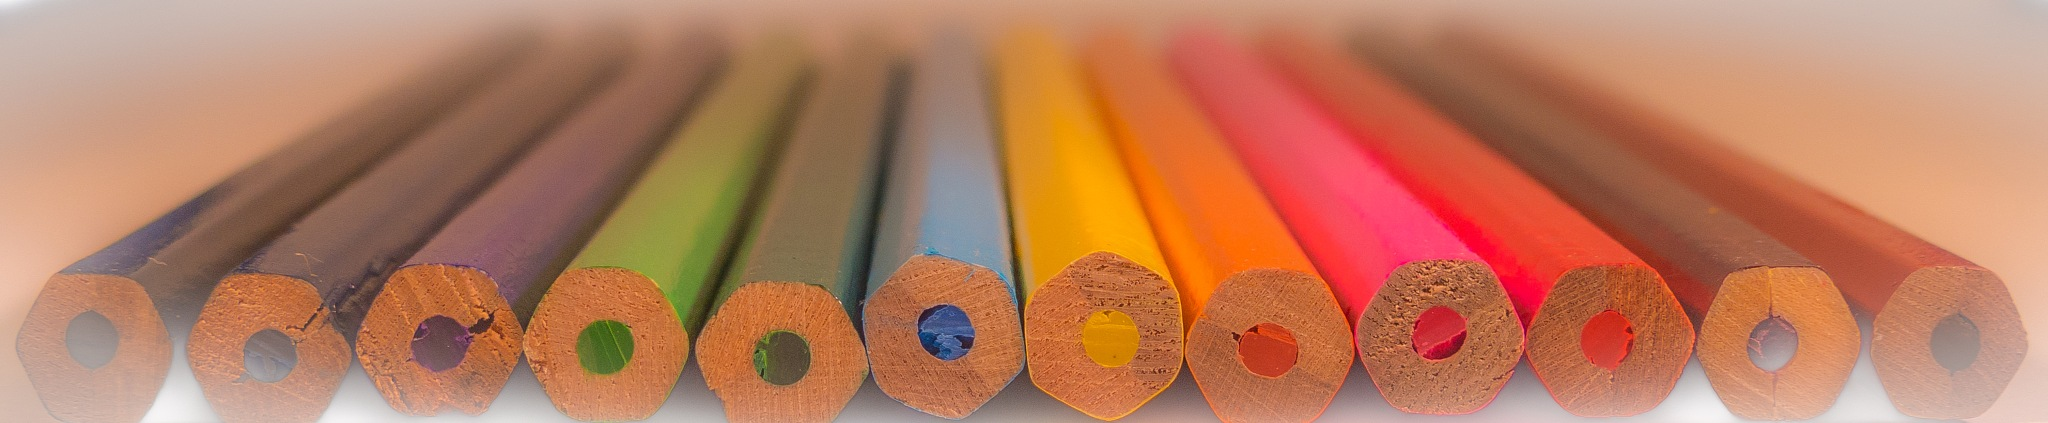 crayons by Paul Geutjes